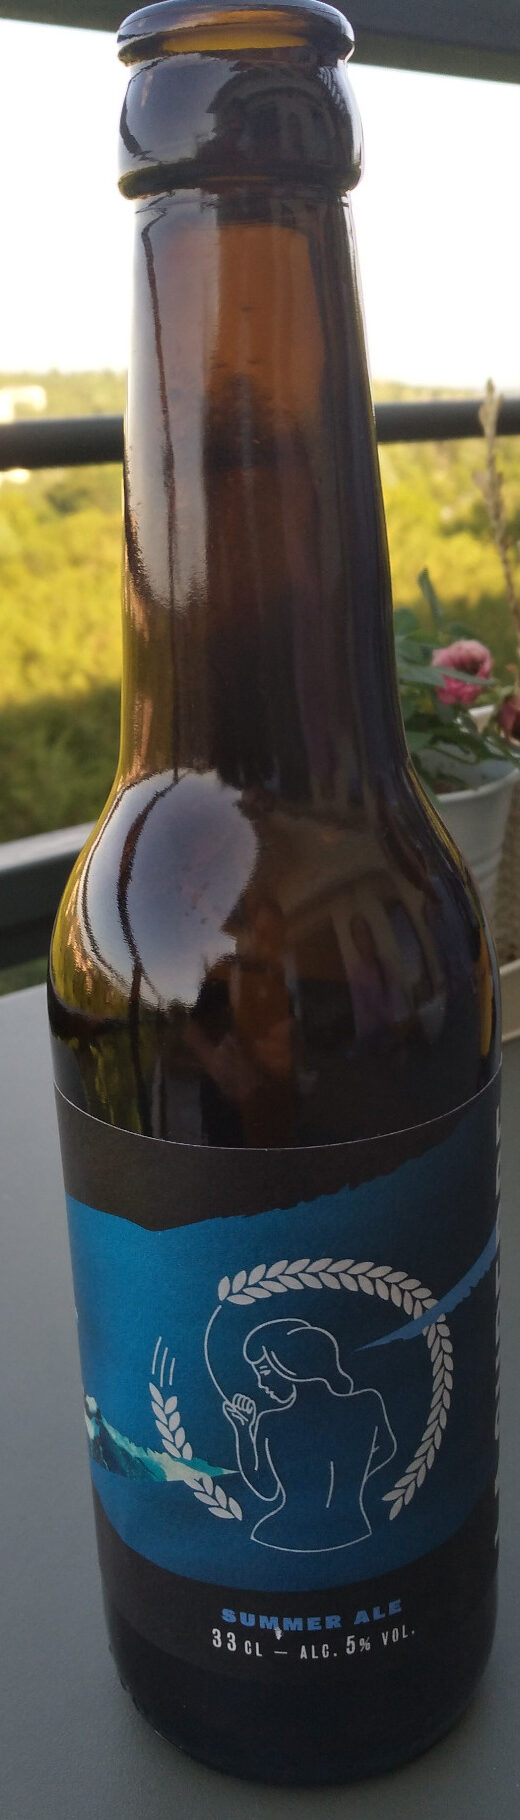 Summer Ale - Product